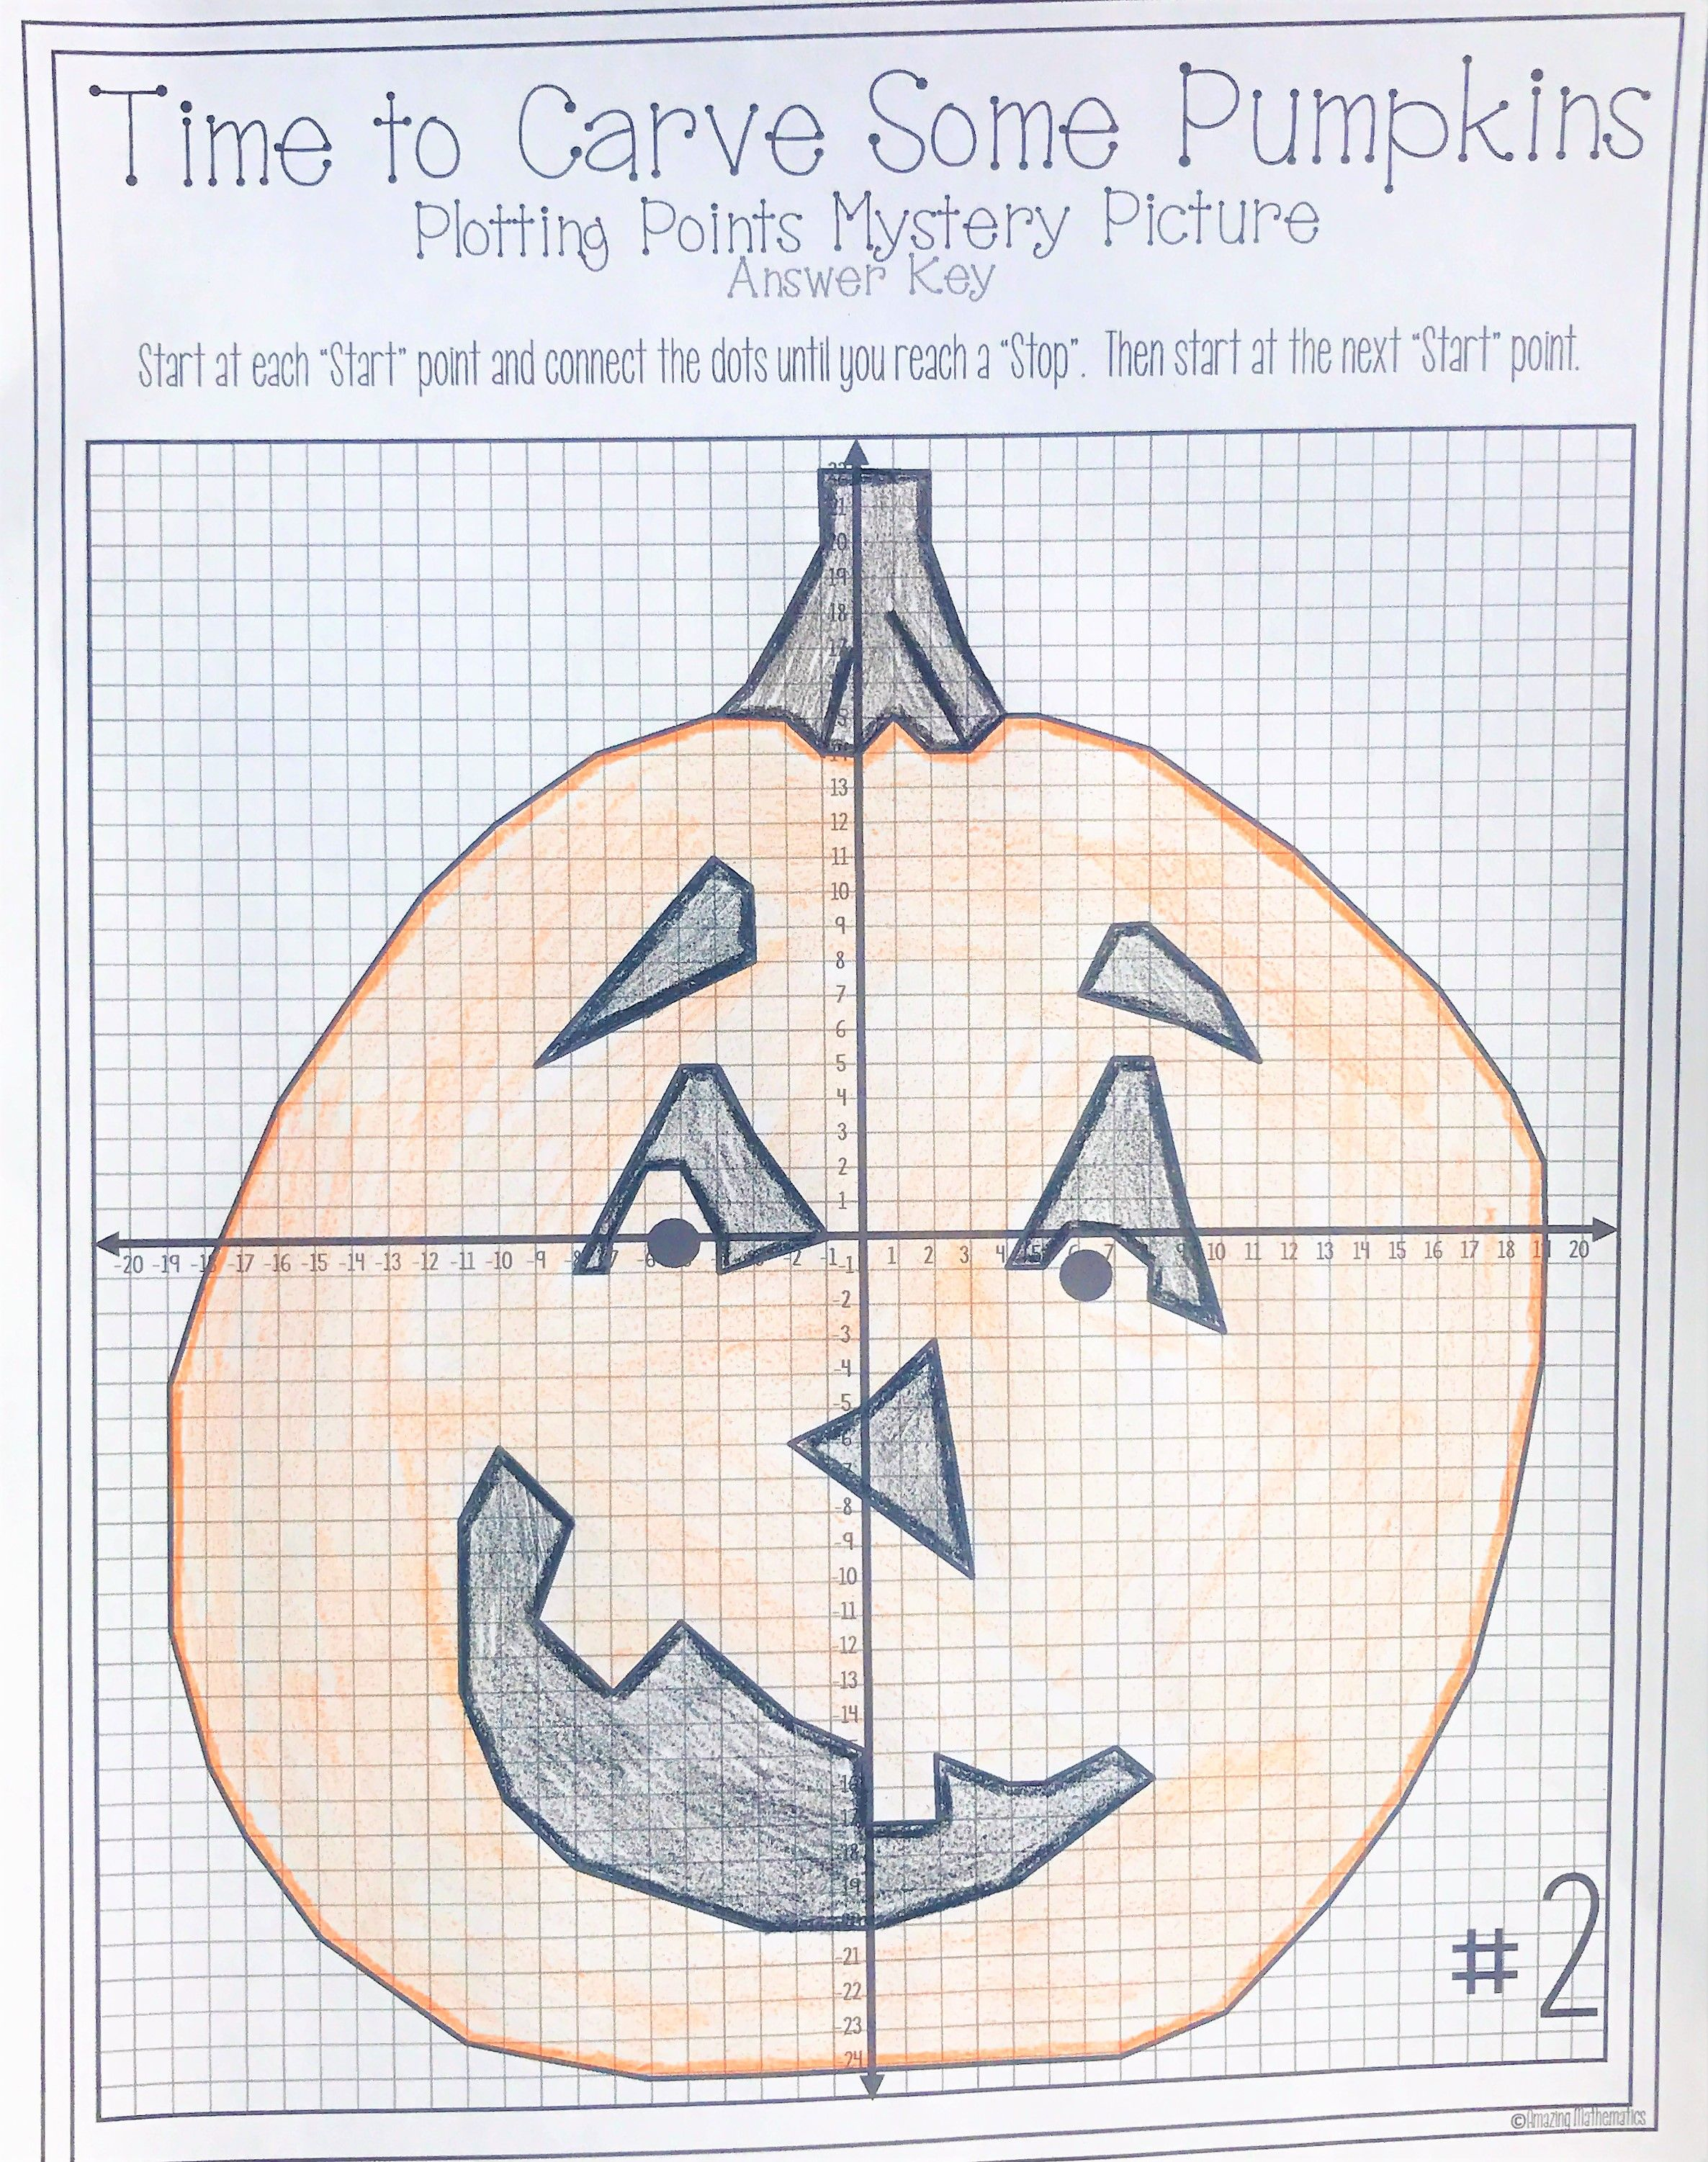 Halloween Pumpkin Carving Plotting Points